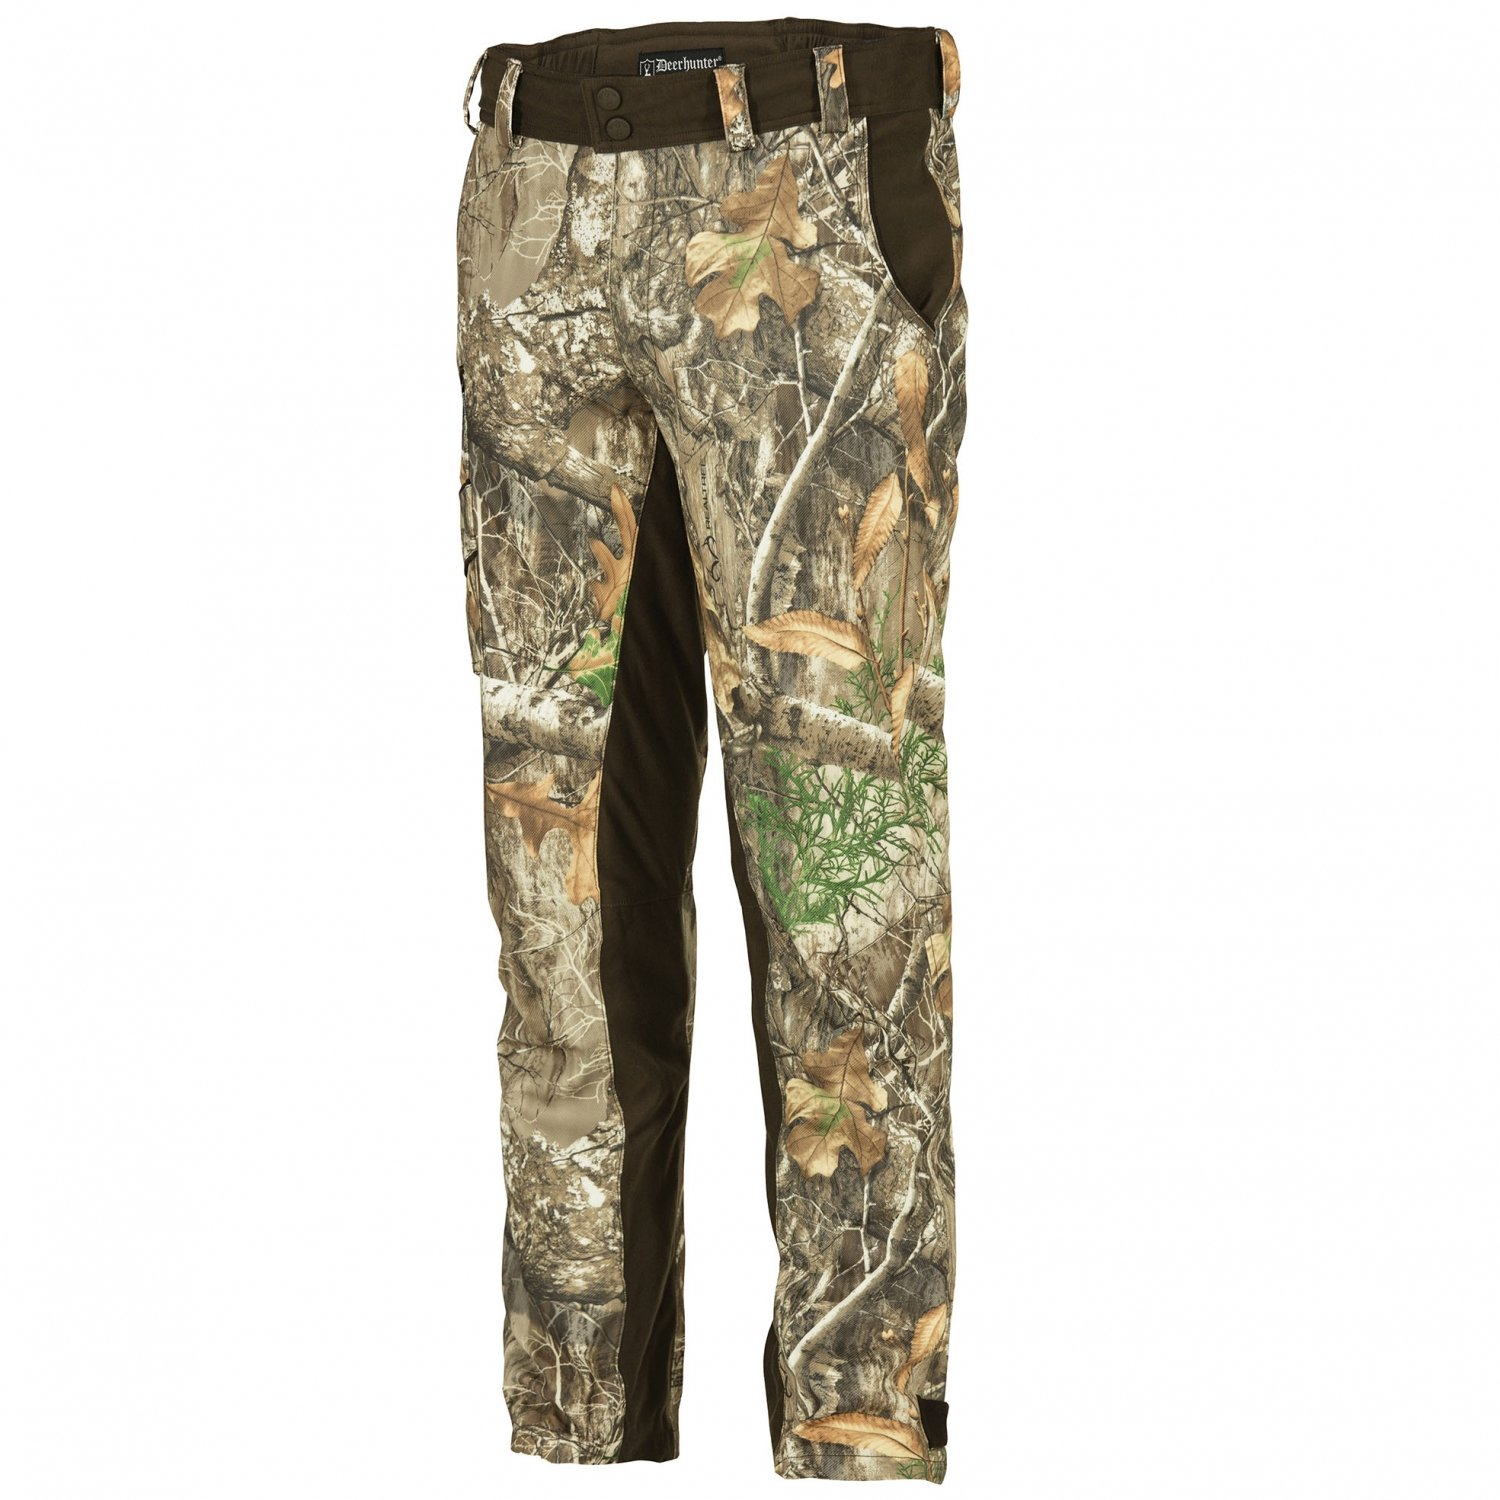 Deer Hunter 3830 Muflon Light Pantalones en Edge Camuflaje/Camuflaje.: Amazon.es: Deportes y aire libre